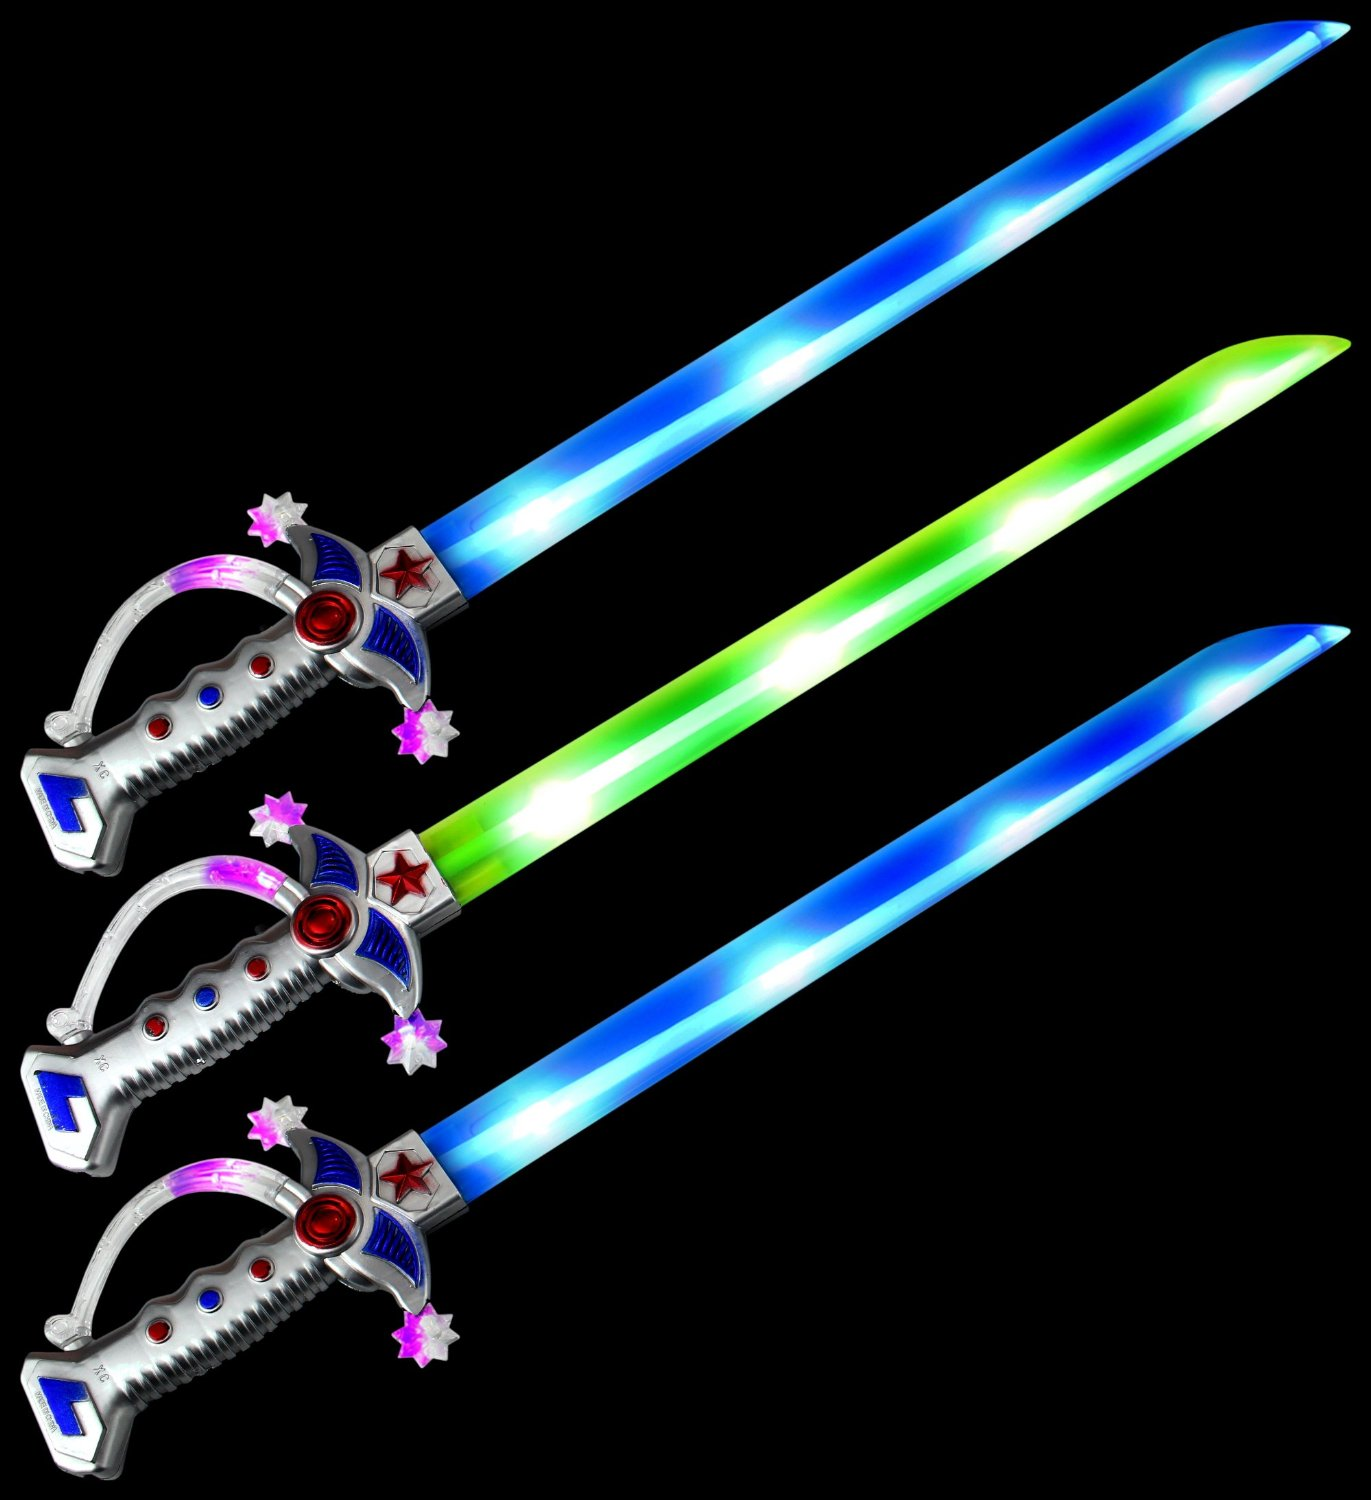 Set of 3 VT Astro Pirate Flashing LED Light Up & Sound Party Favor Toy Light Sword Sabers